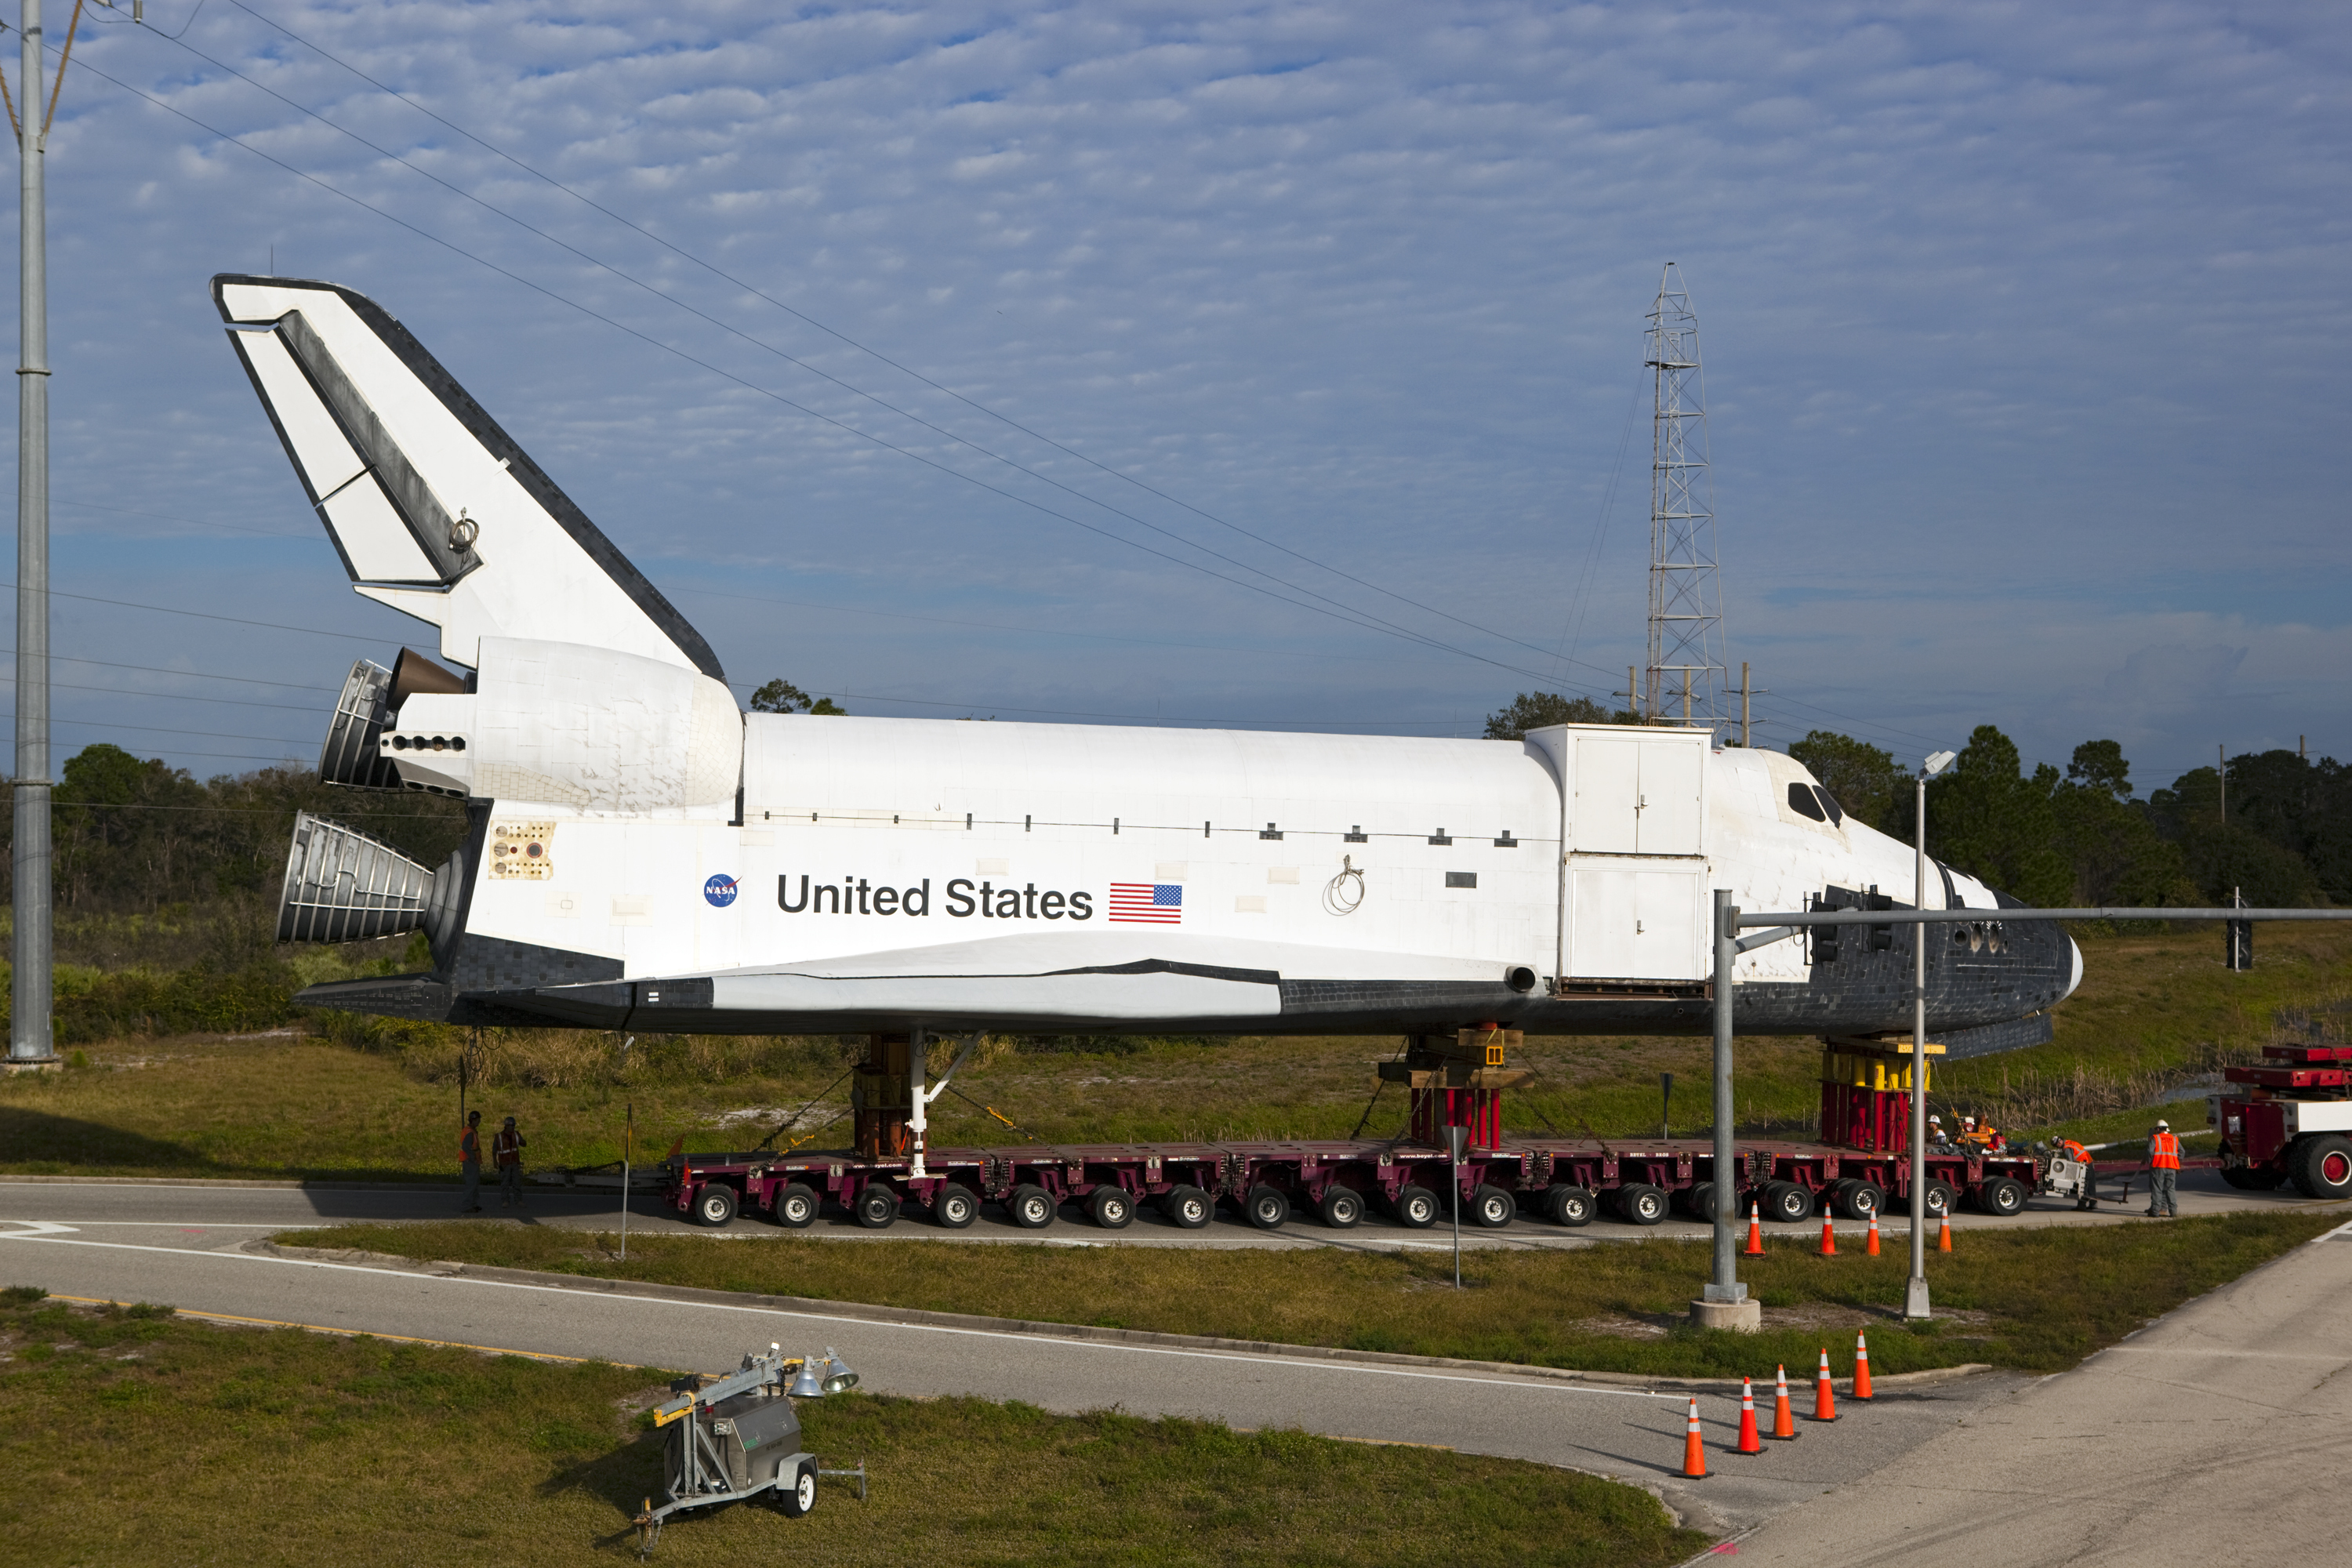 nasa truck side view - photo #43